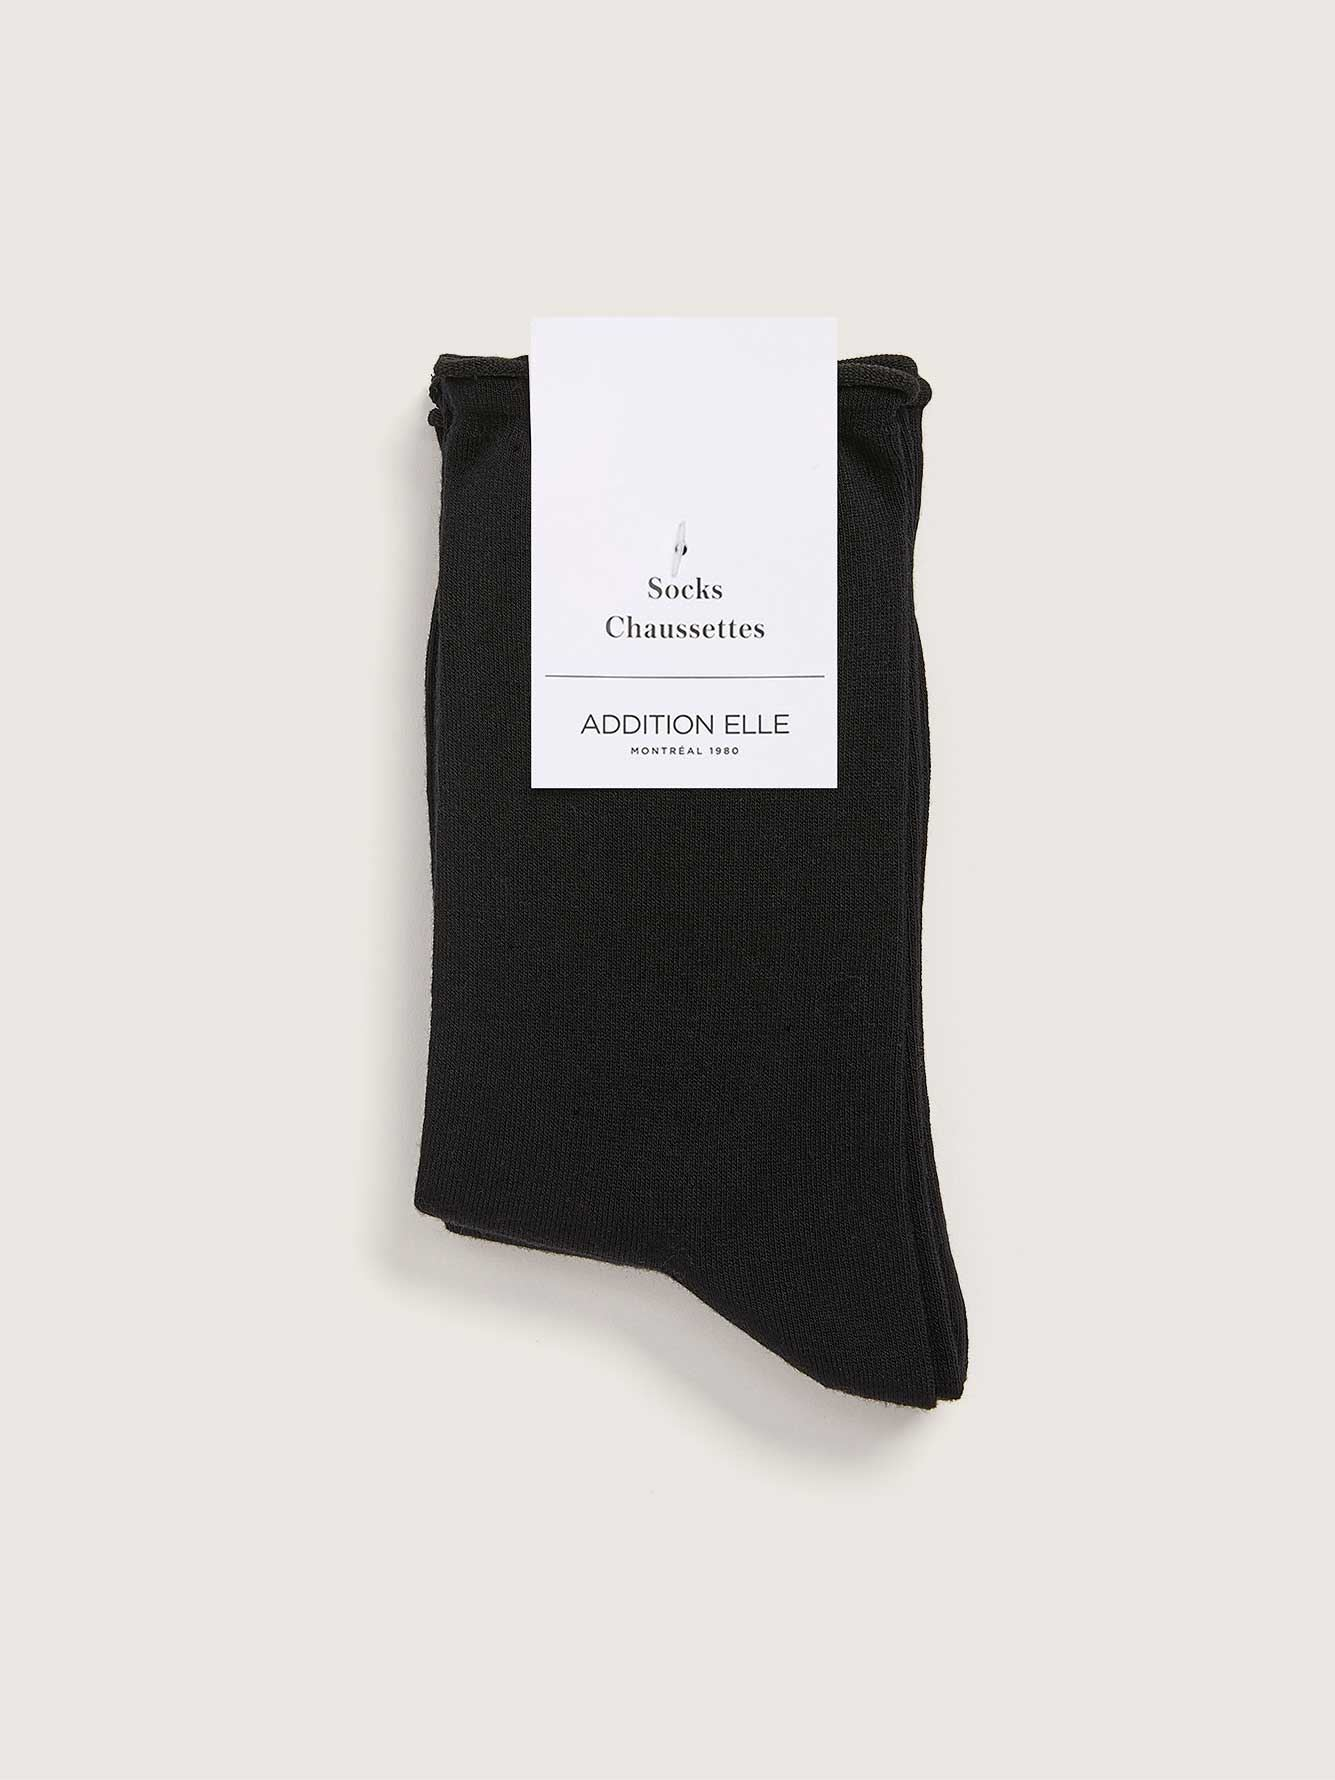 Cotton Socks with Rolled Edge, Pack of 3 - Addition Elle